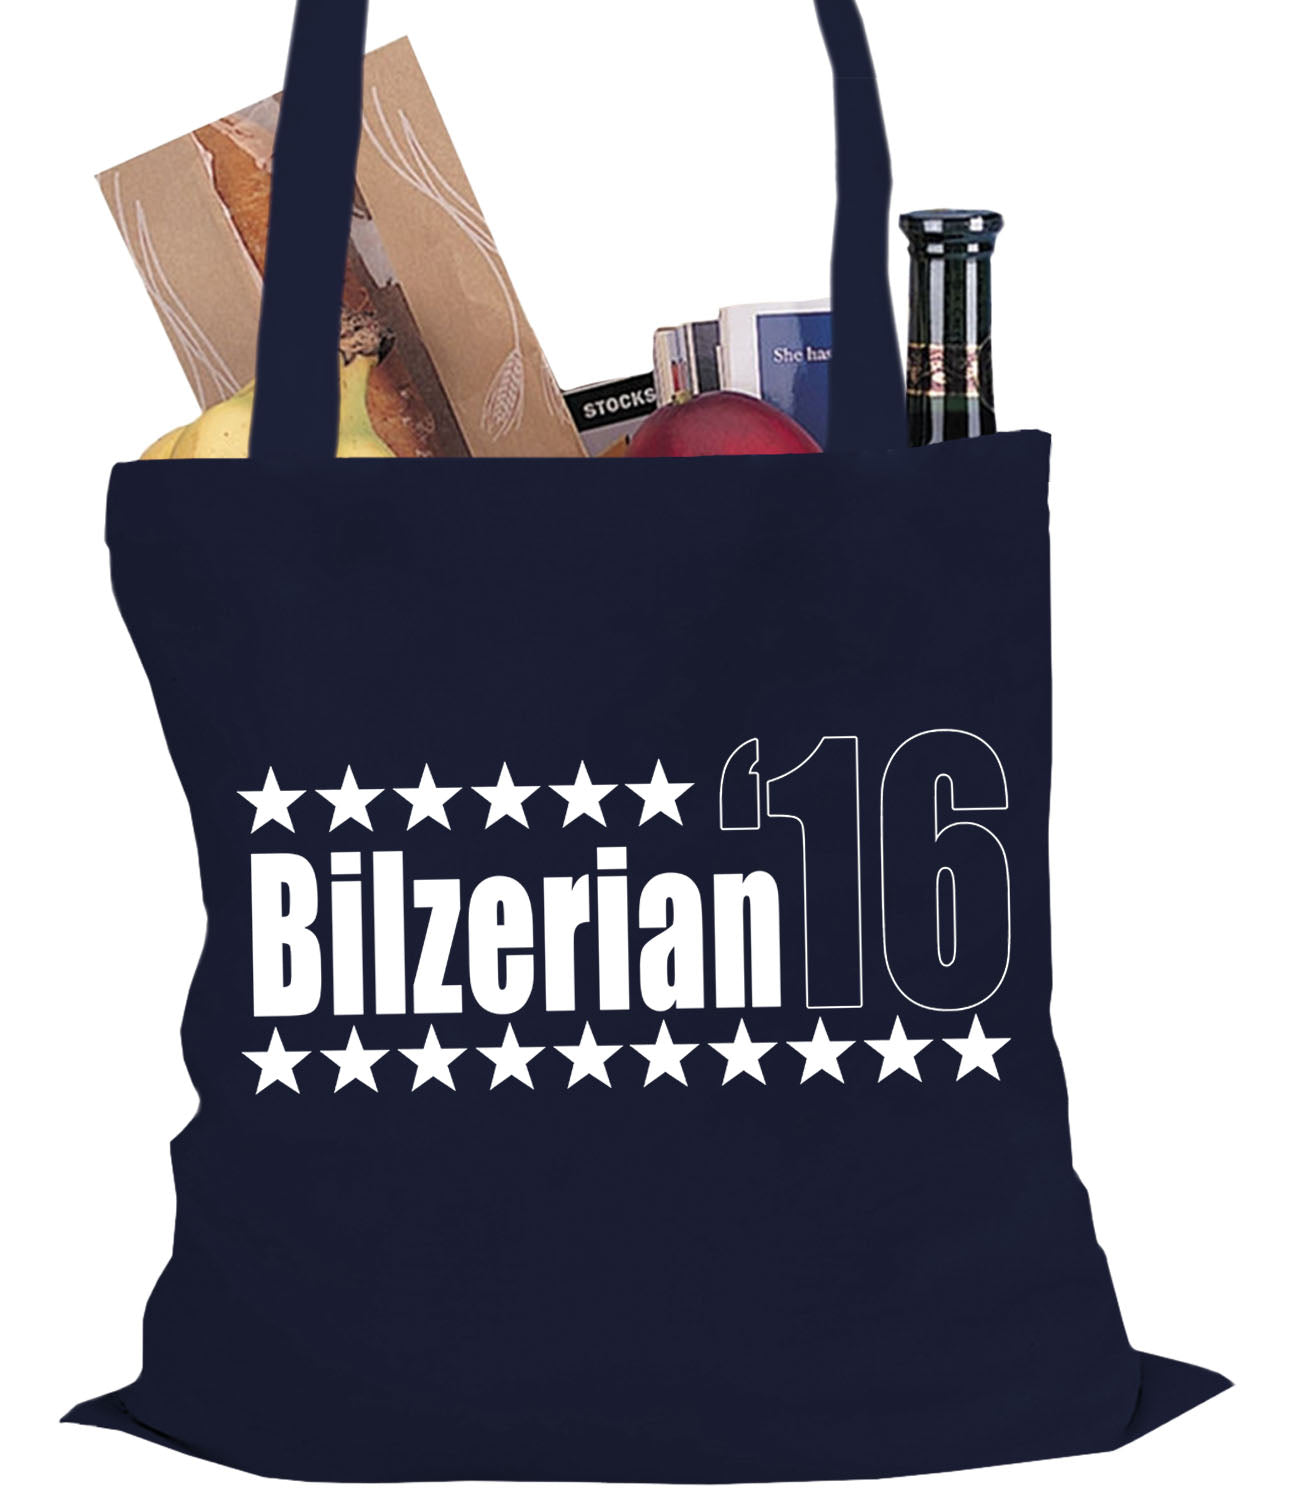 Bilzerian '16 - Vote For Bilzerian For President in 2016 Tote Bag